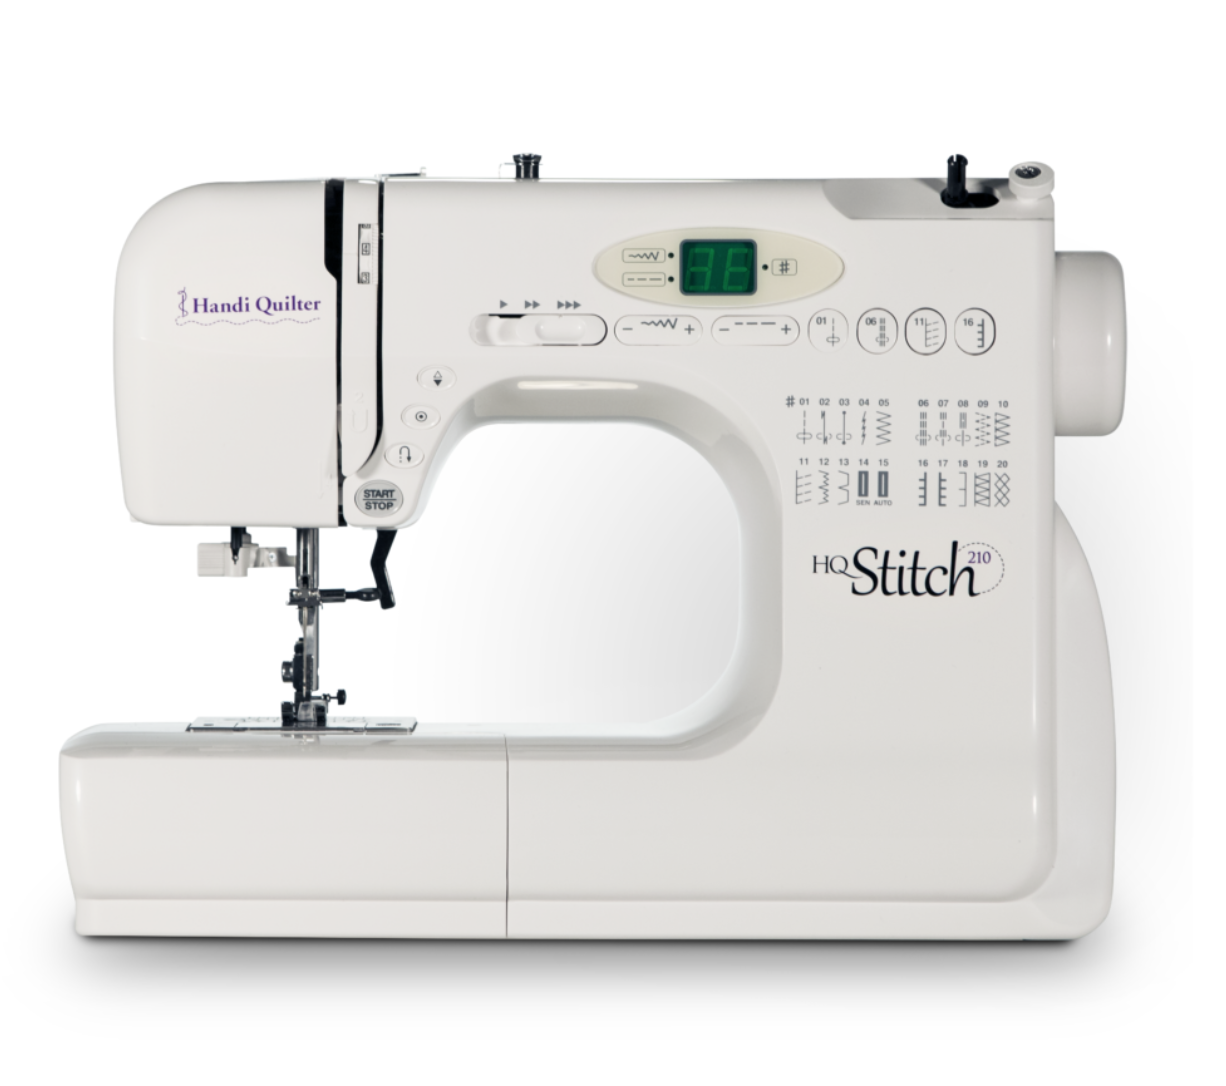 HQ Stitch 210 Sewing Machine